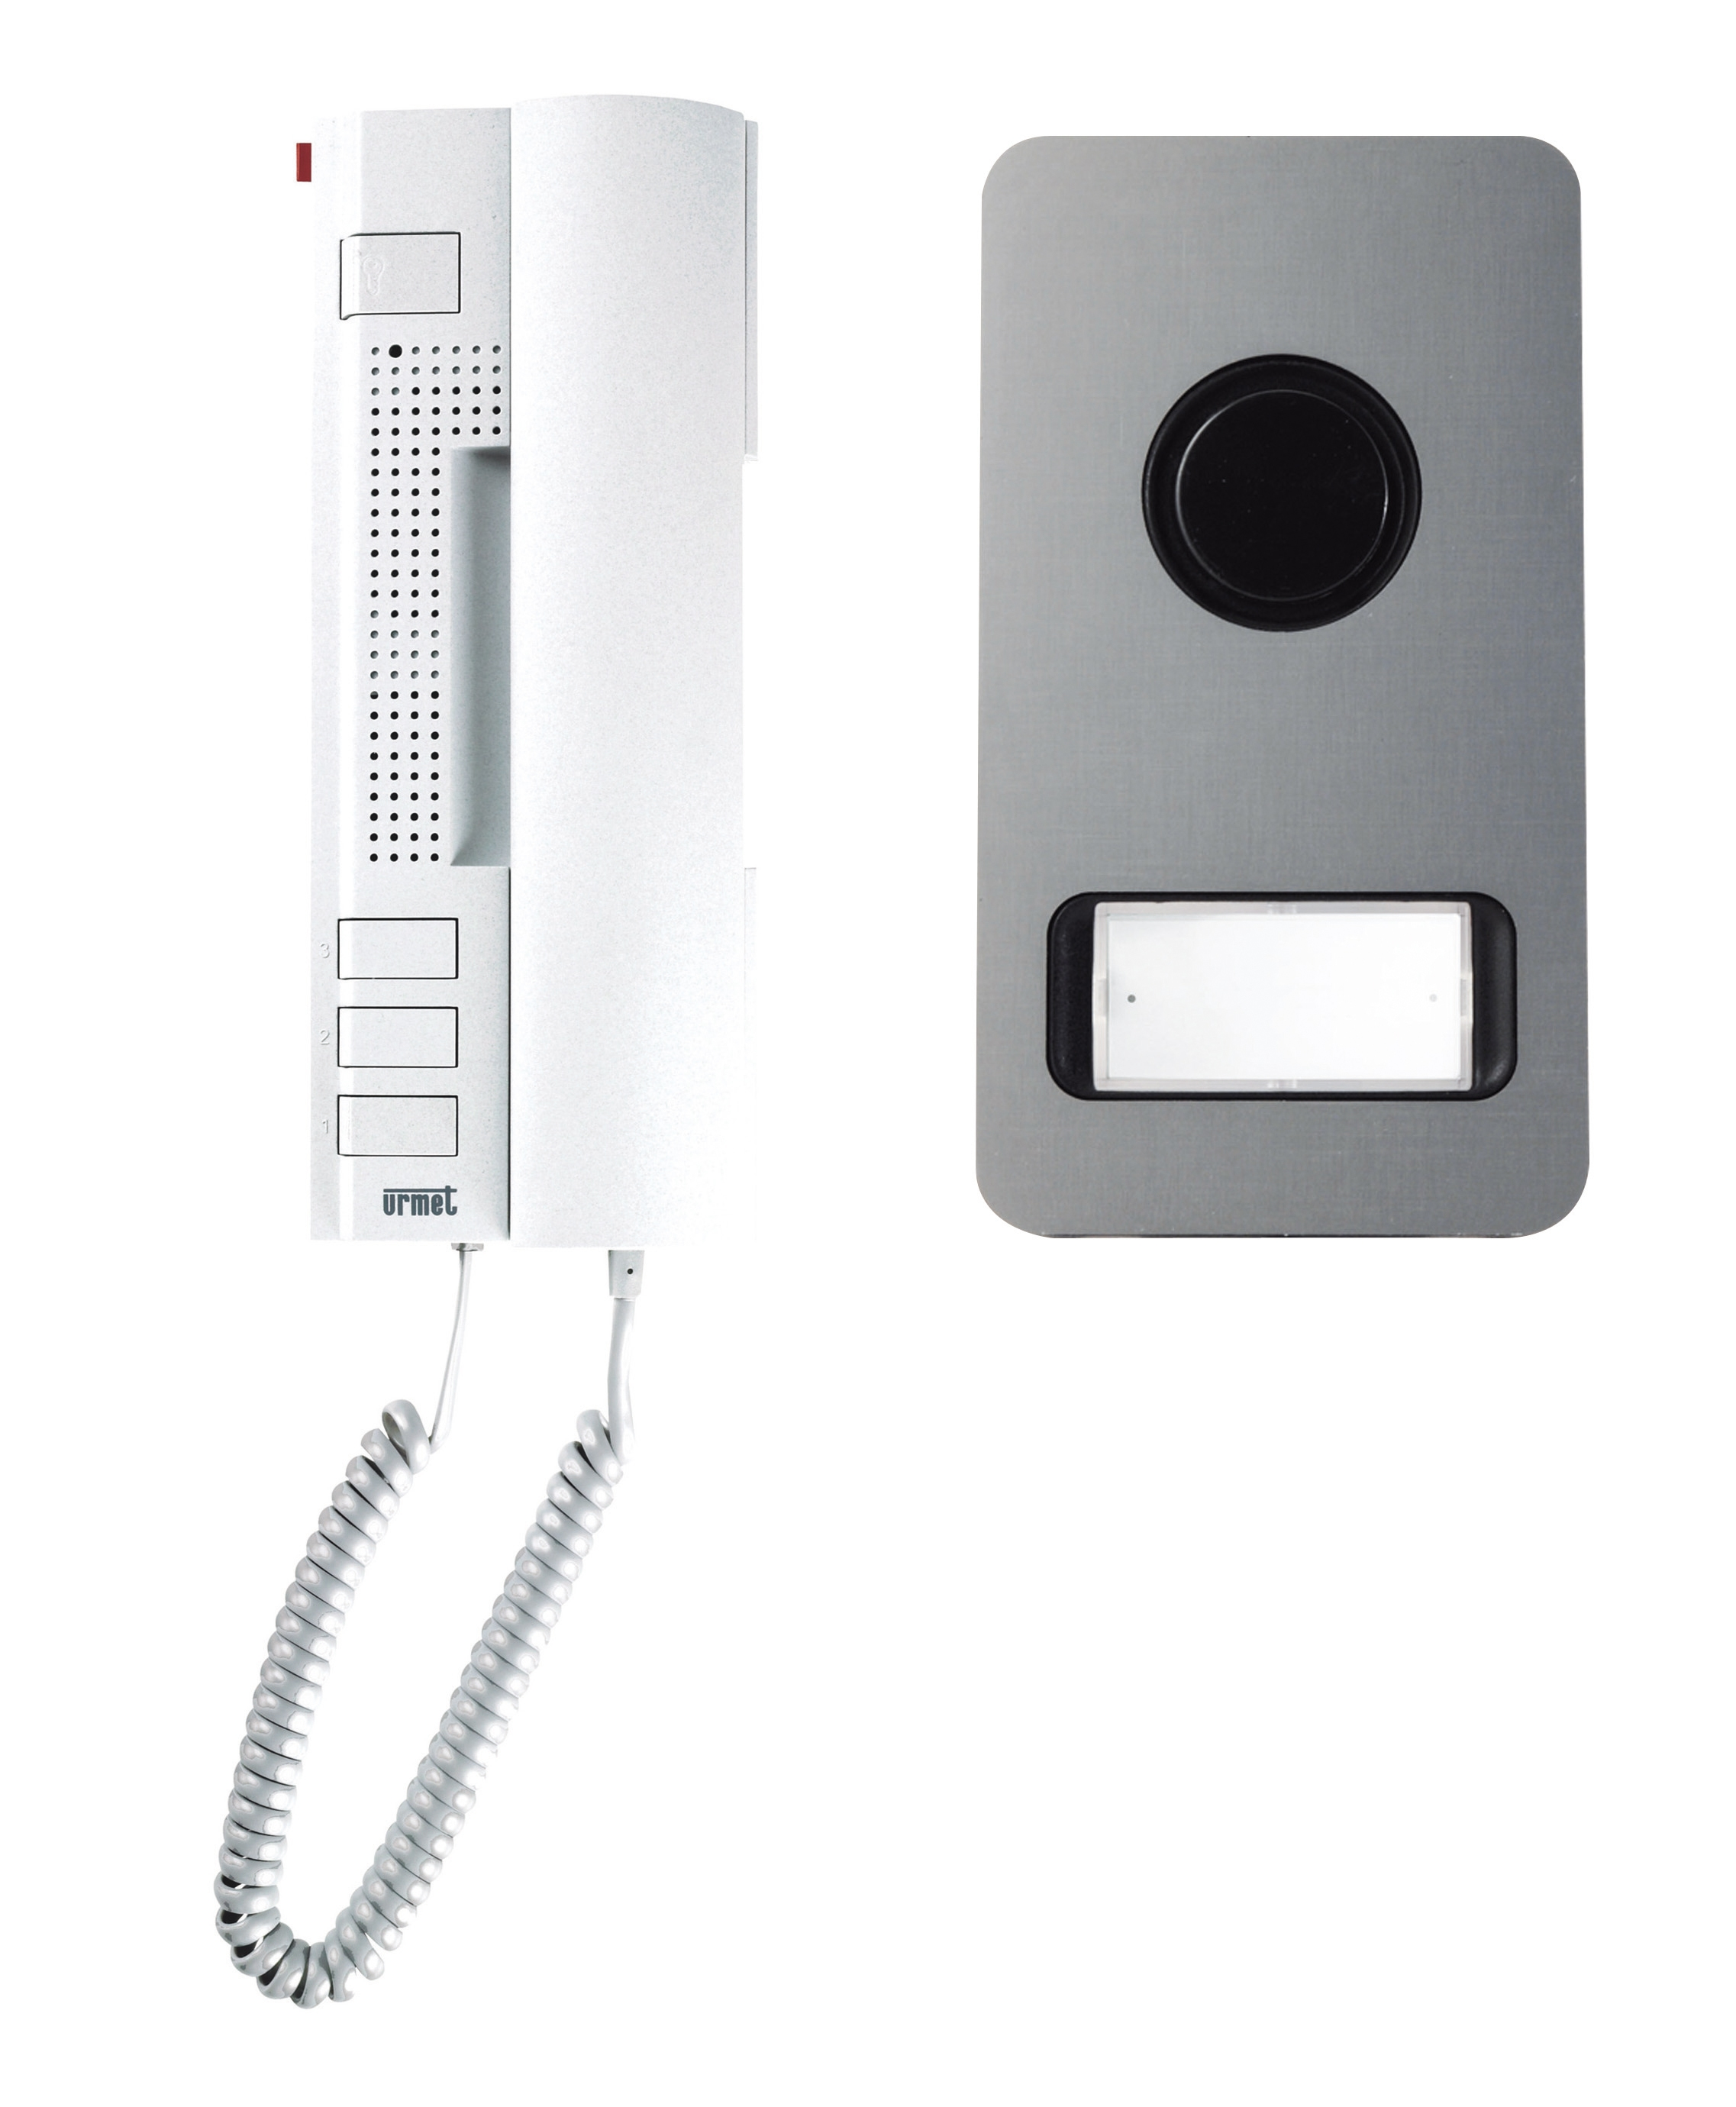 POSTE BIBUS UTOPIA MAINS LIBRES COMBINE INTERPHONE 1172//43 URMET